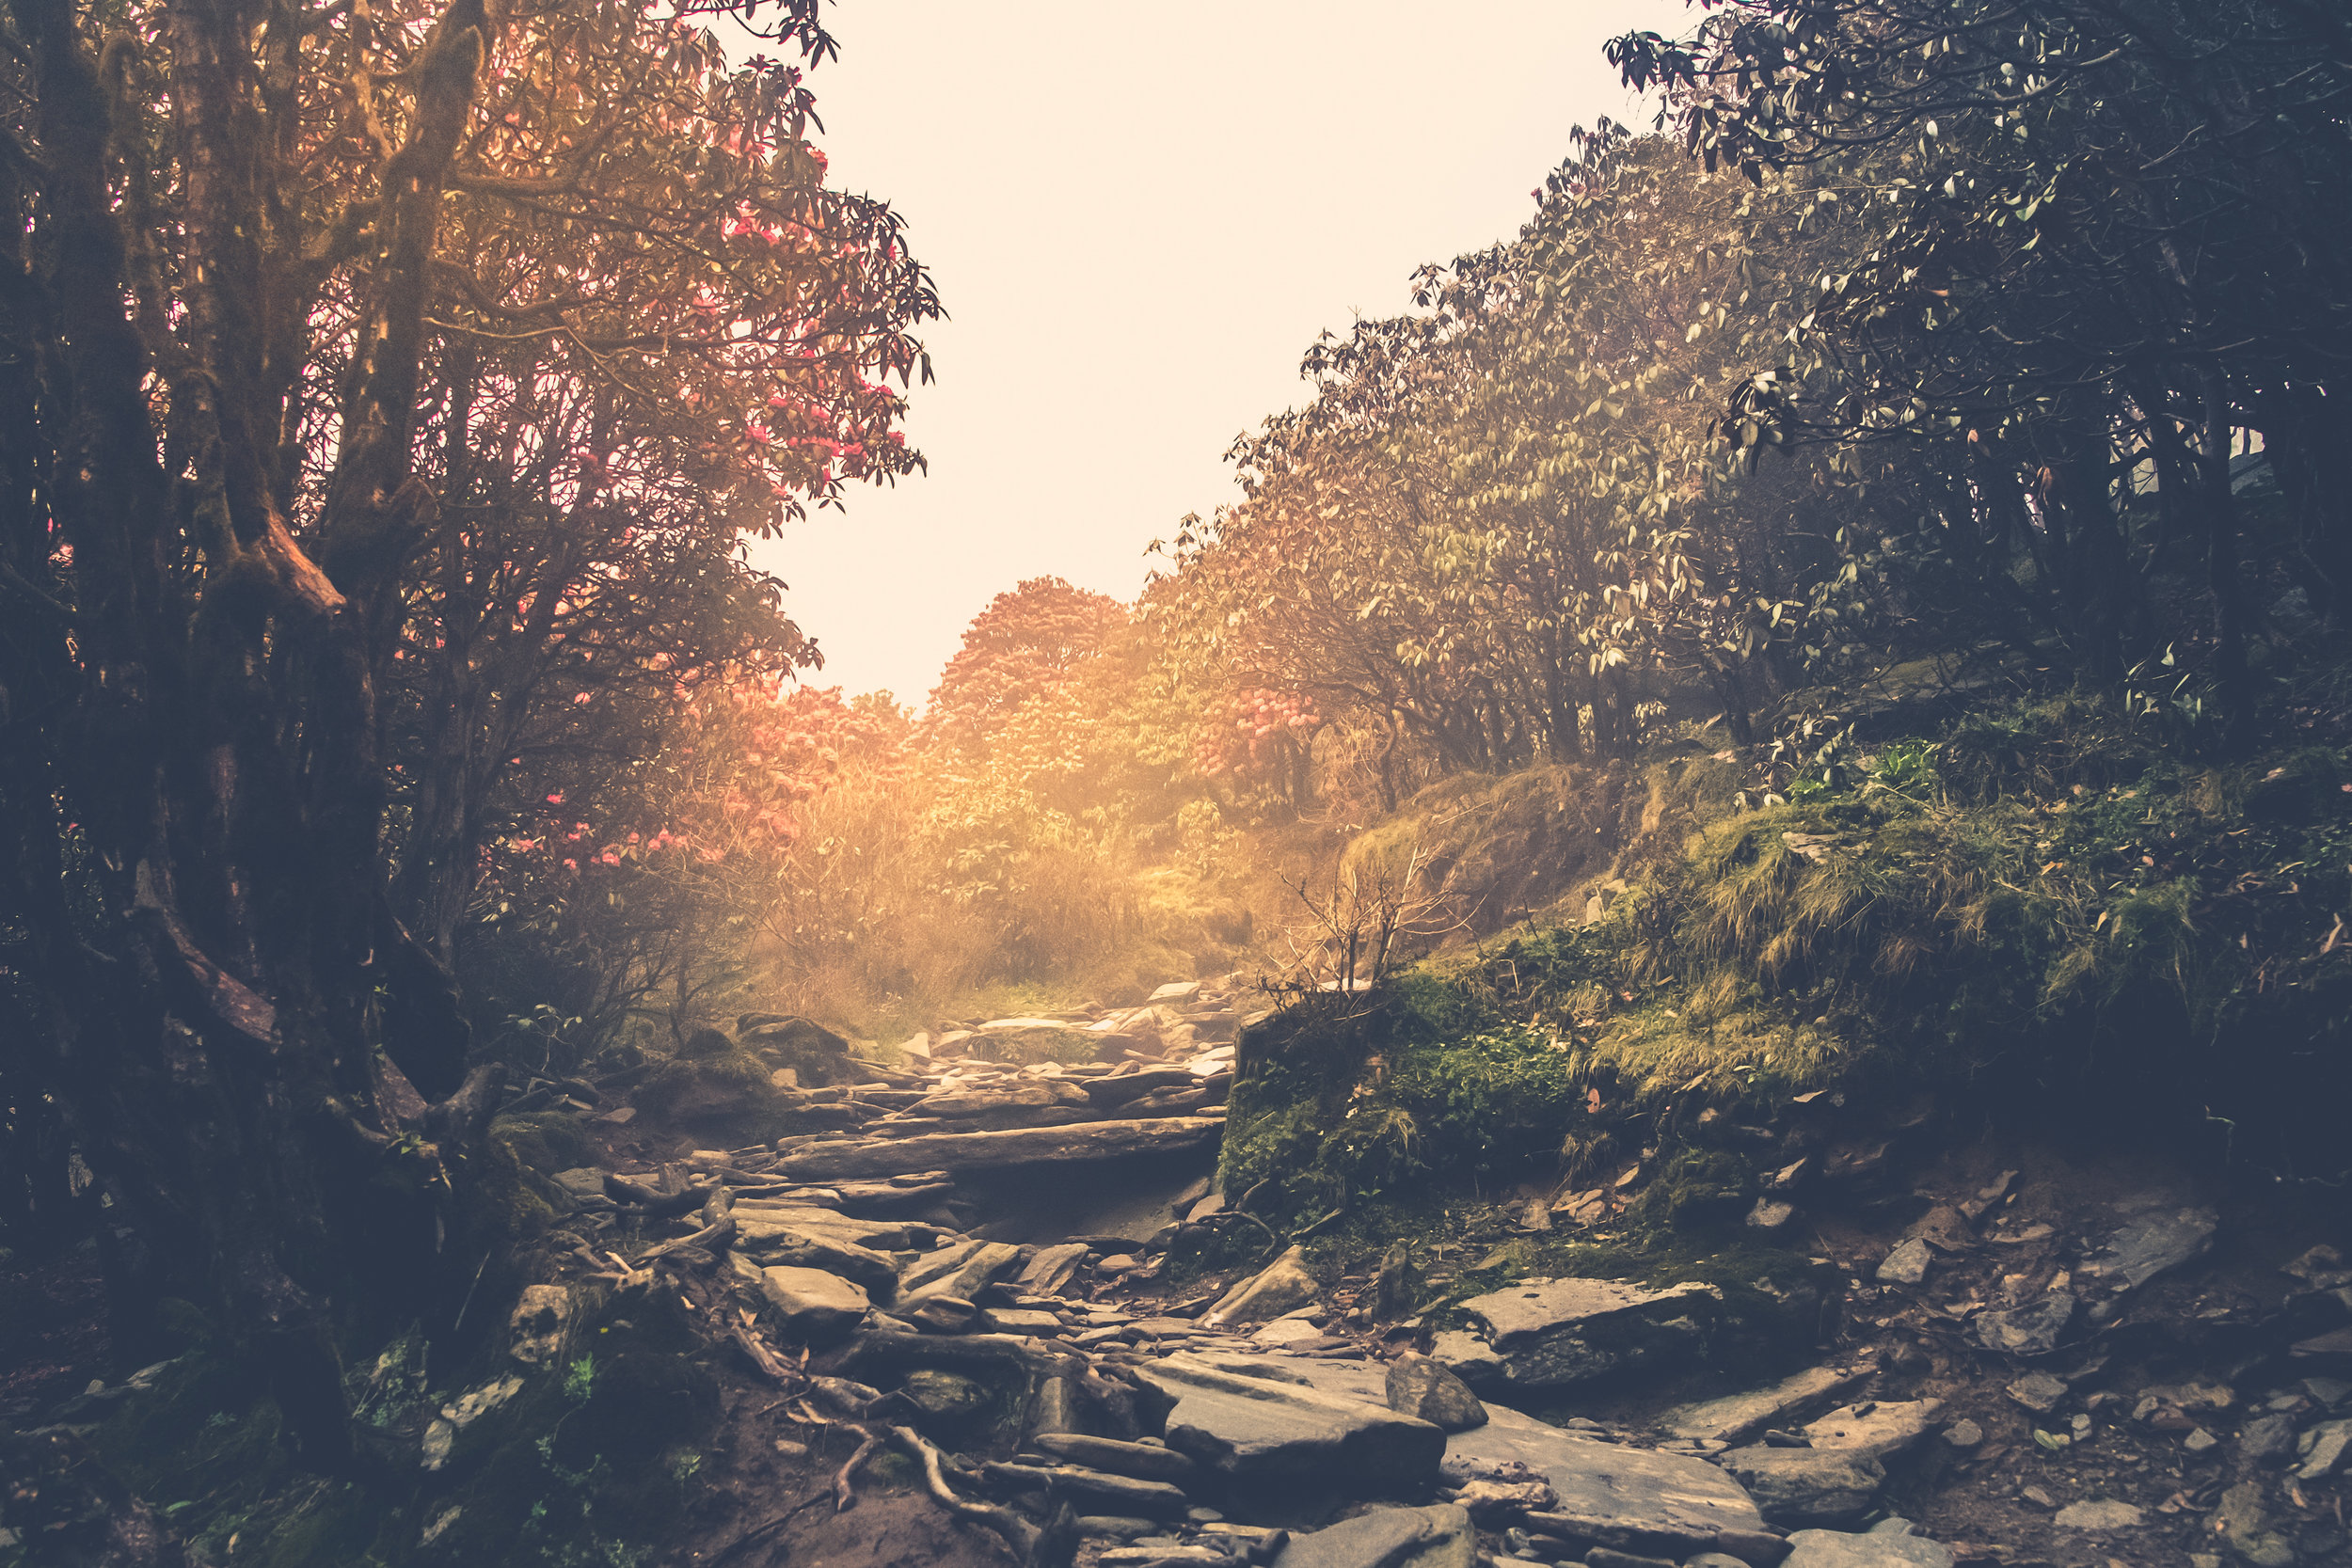 trail-through-a-mysterious-forest-PY4TCB5.jpg